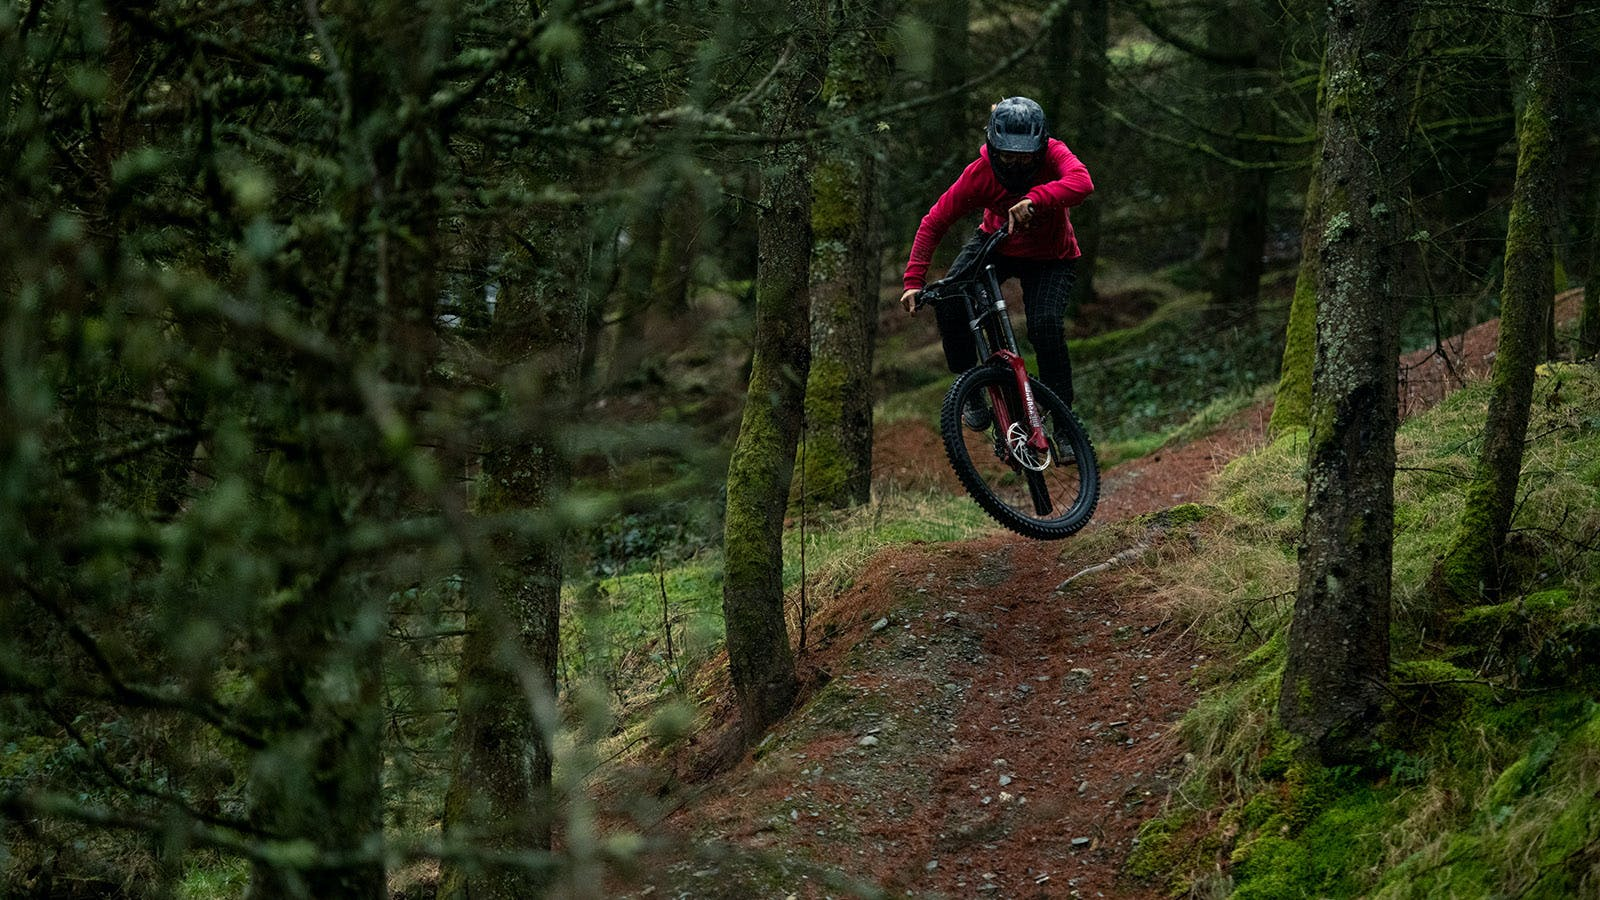 Veronique Sandler riding her downhill bike in the woods